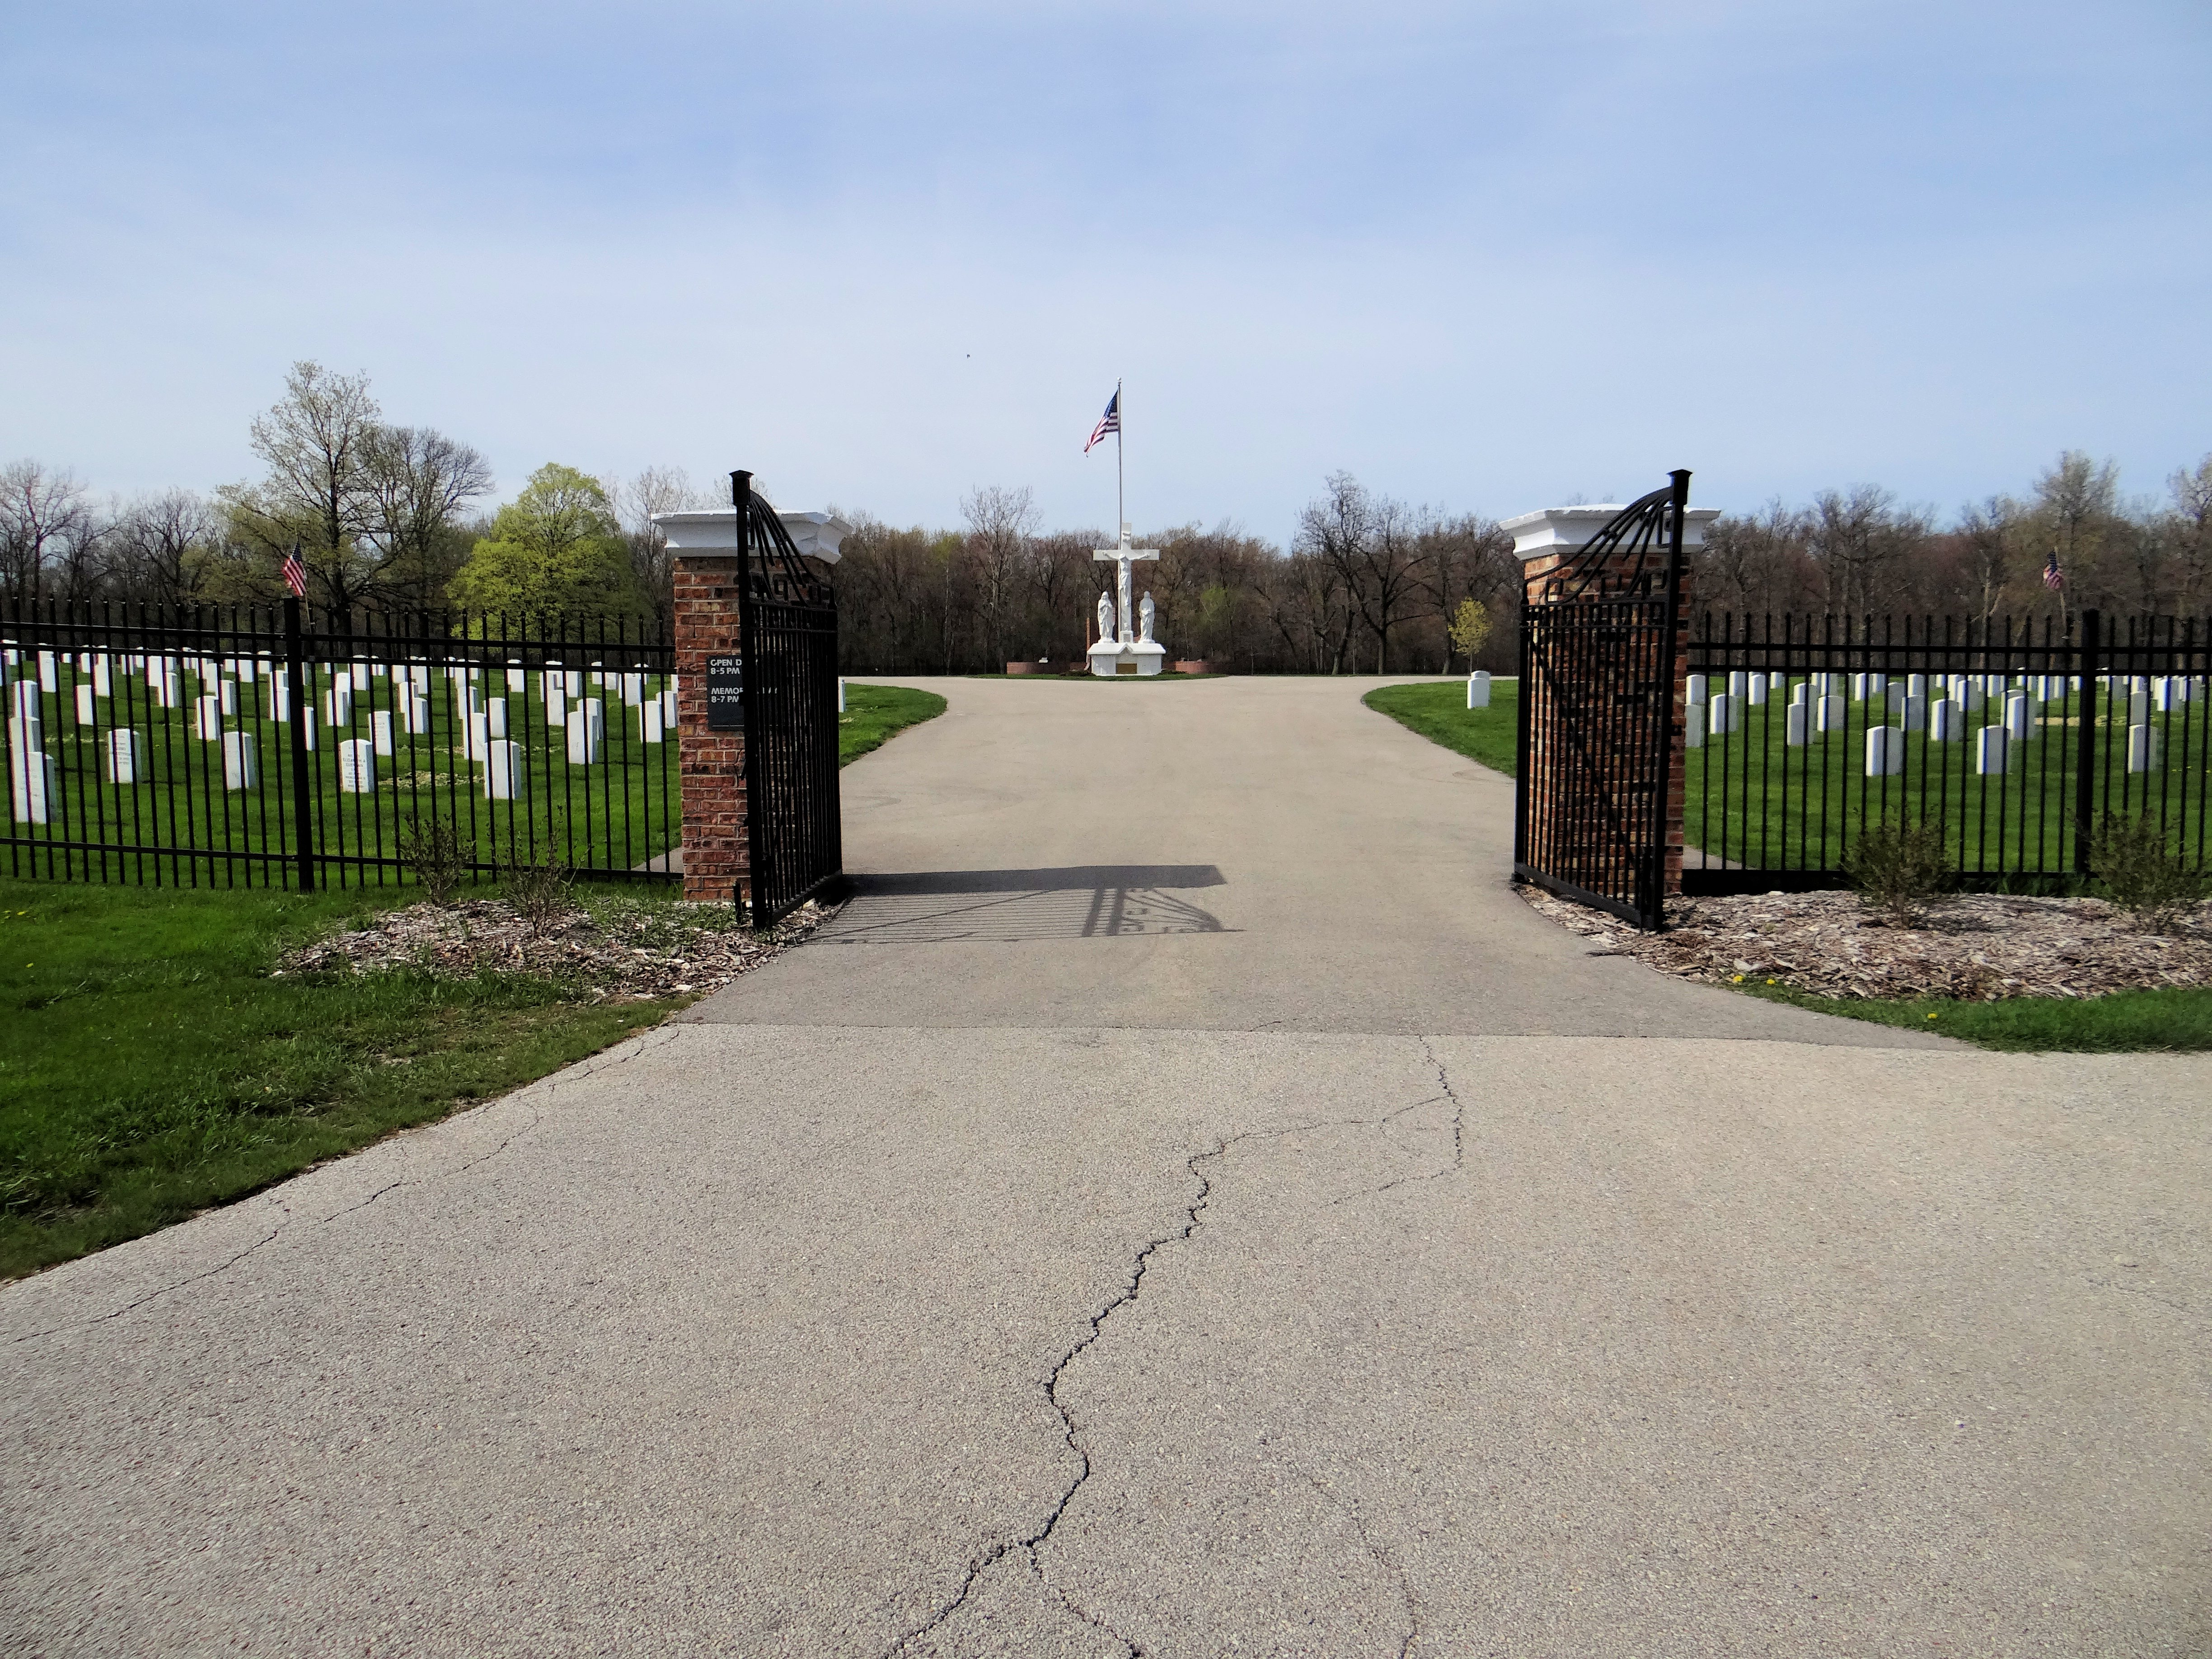 fort sheridan Fort sheridan is a neighborhood in highwood, illinois view homes for sale, photos, maps, school ratings and more at neighborhoodscom.